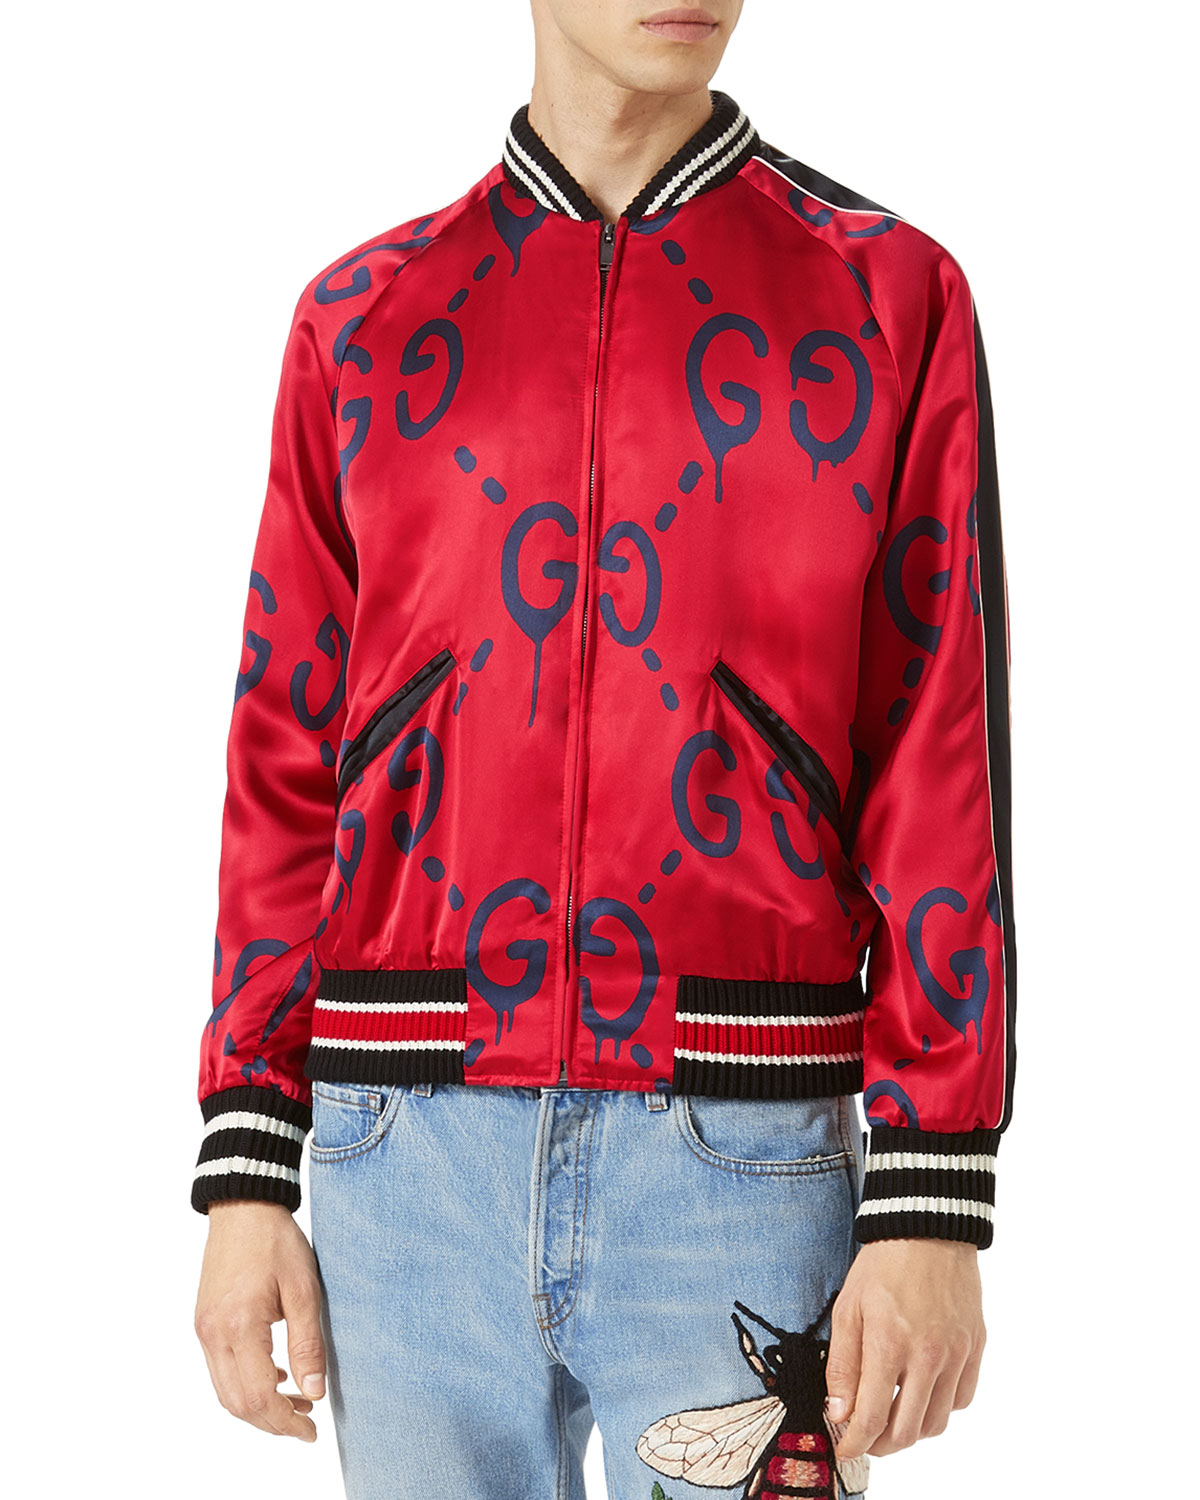 c296c9b4 GucciGhost Bomber Jacket, Red